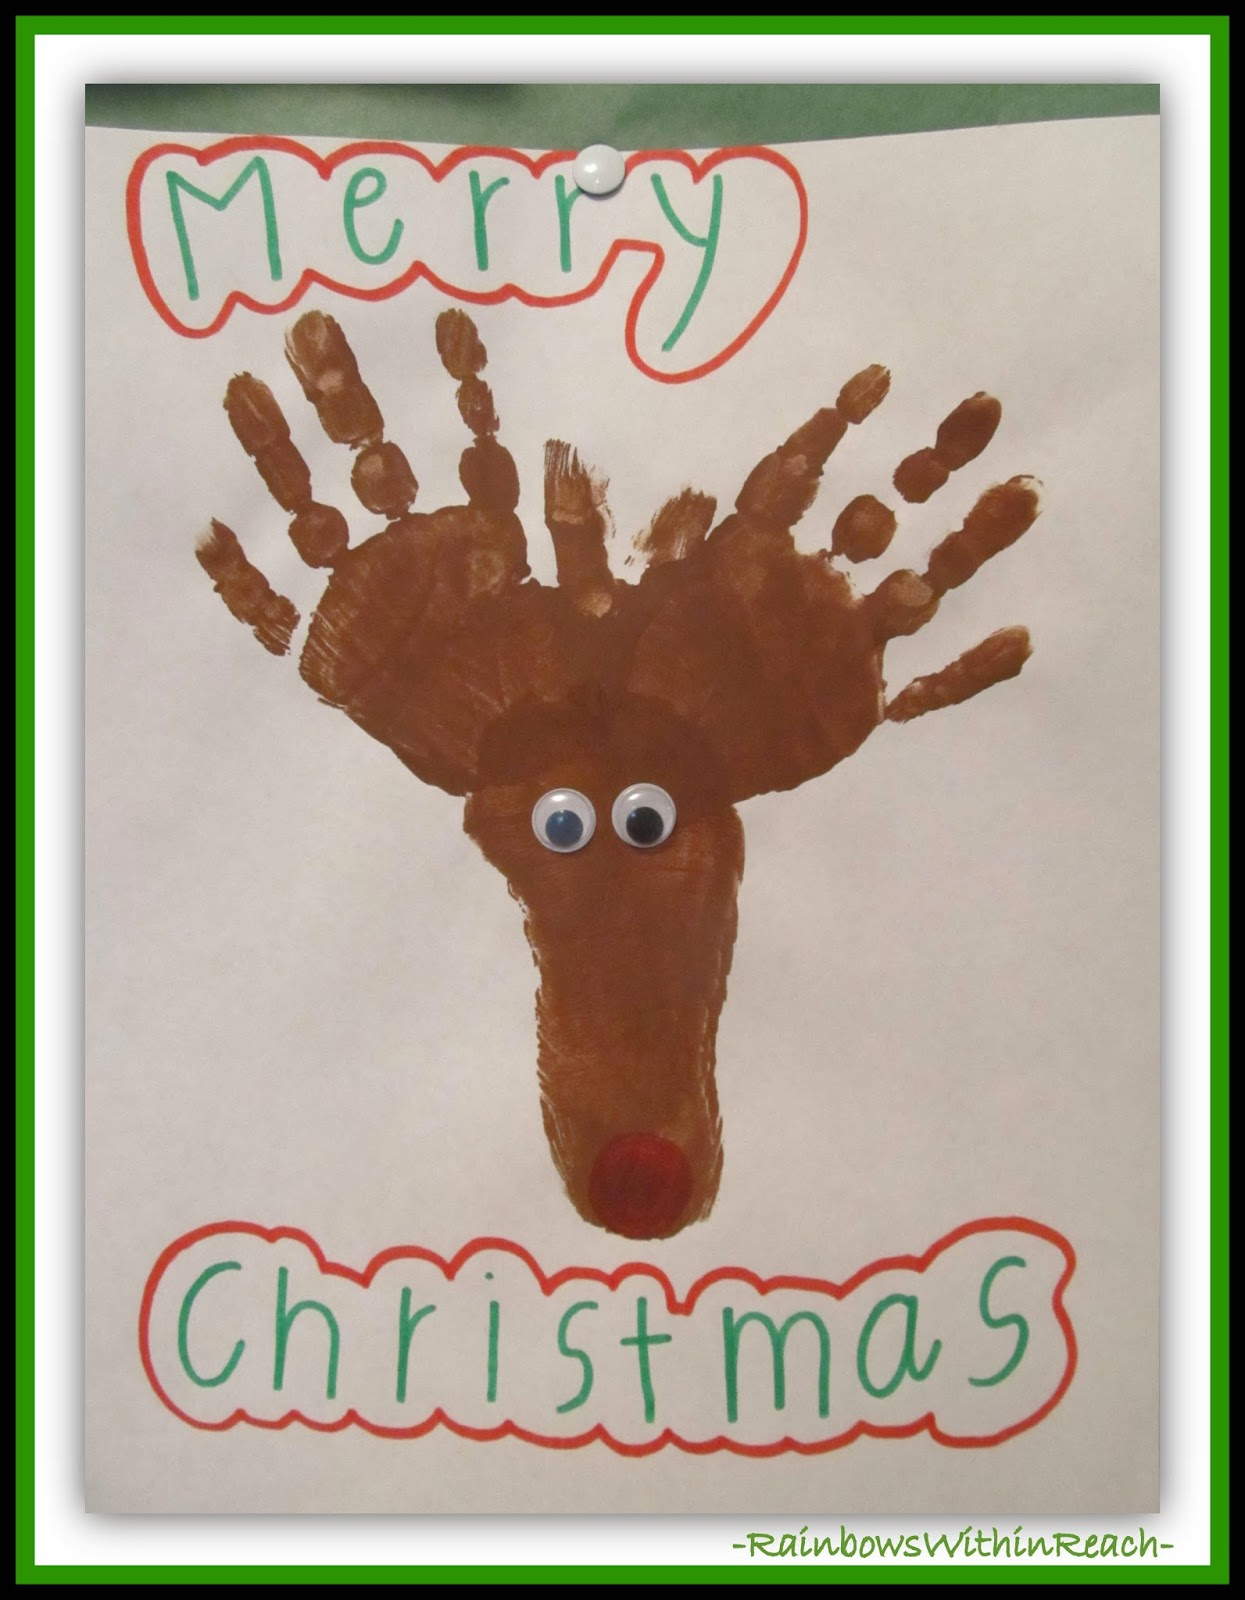 Hands and Foot Painted to Create a Reindeer {Painted Hands RoundUP at RainbowsWithinReach}